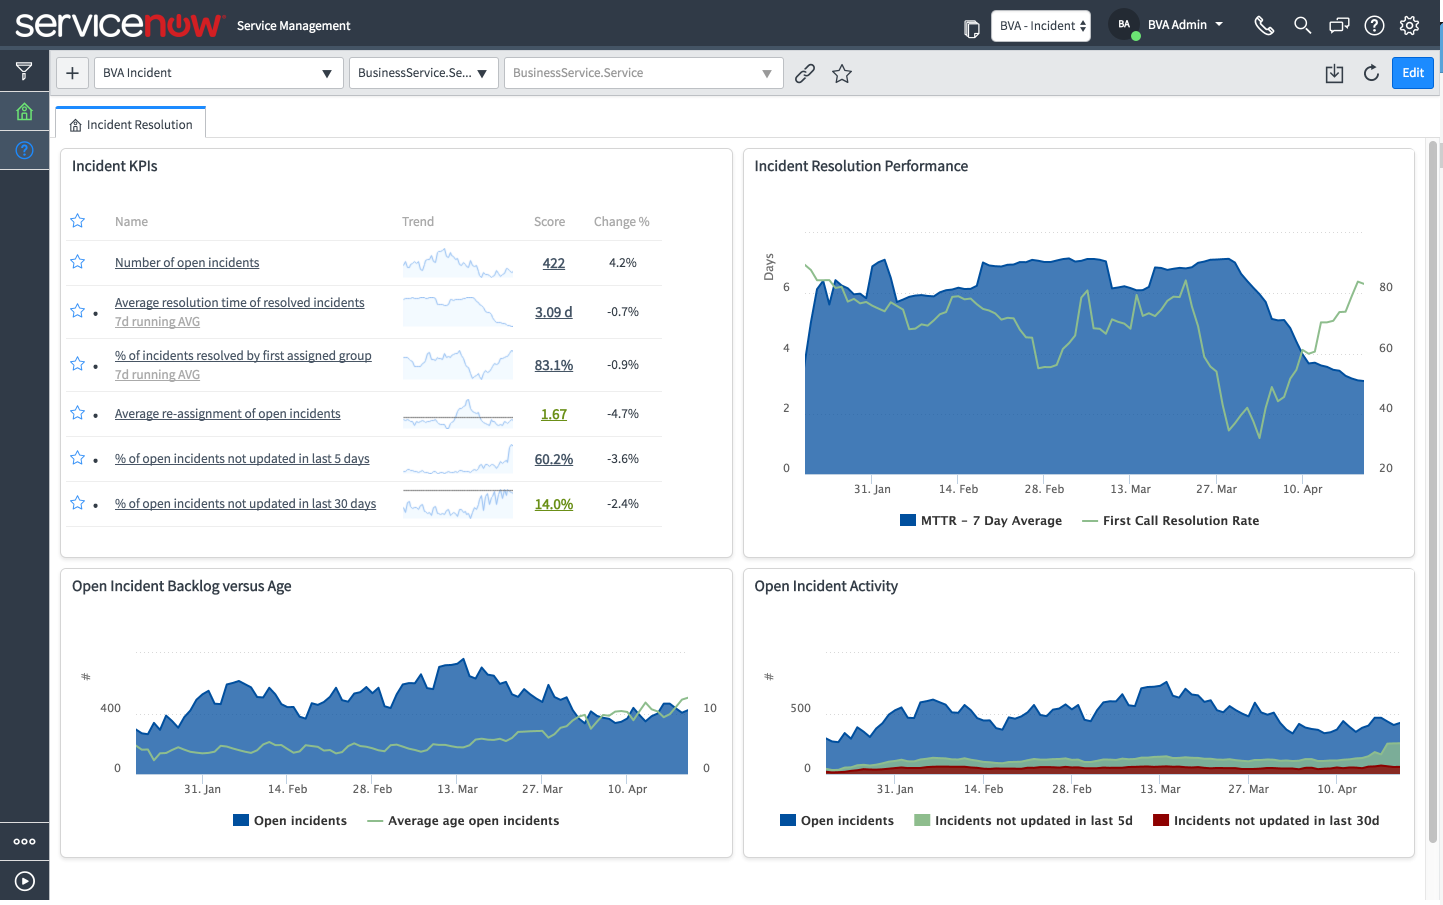 ServiceNow ITSM Performance Analytics Dashboard Measuring Incident KPIs and Performance